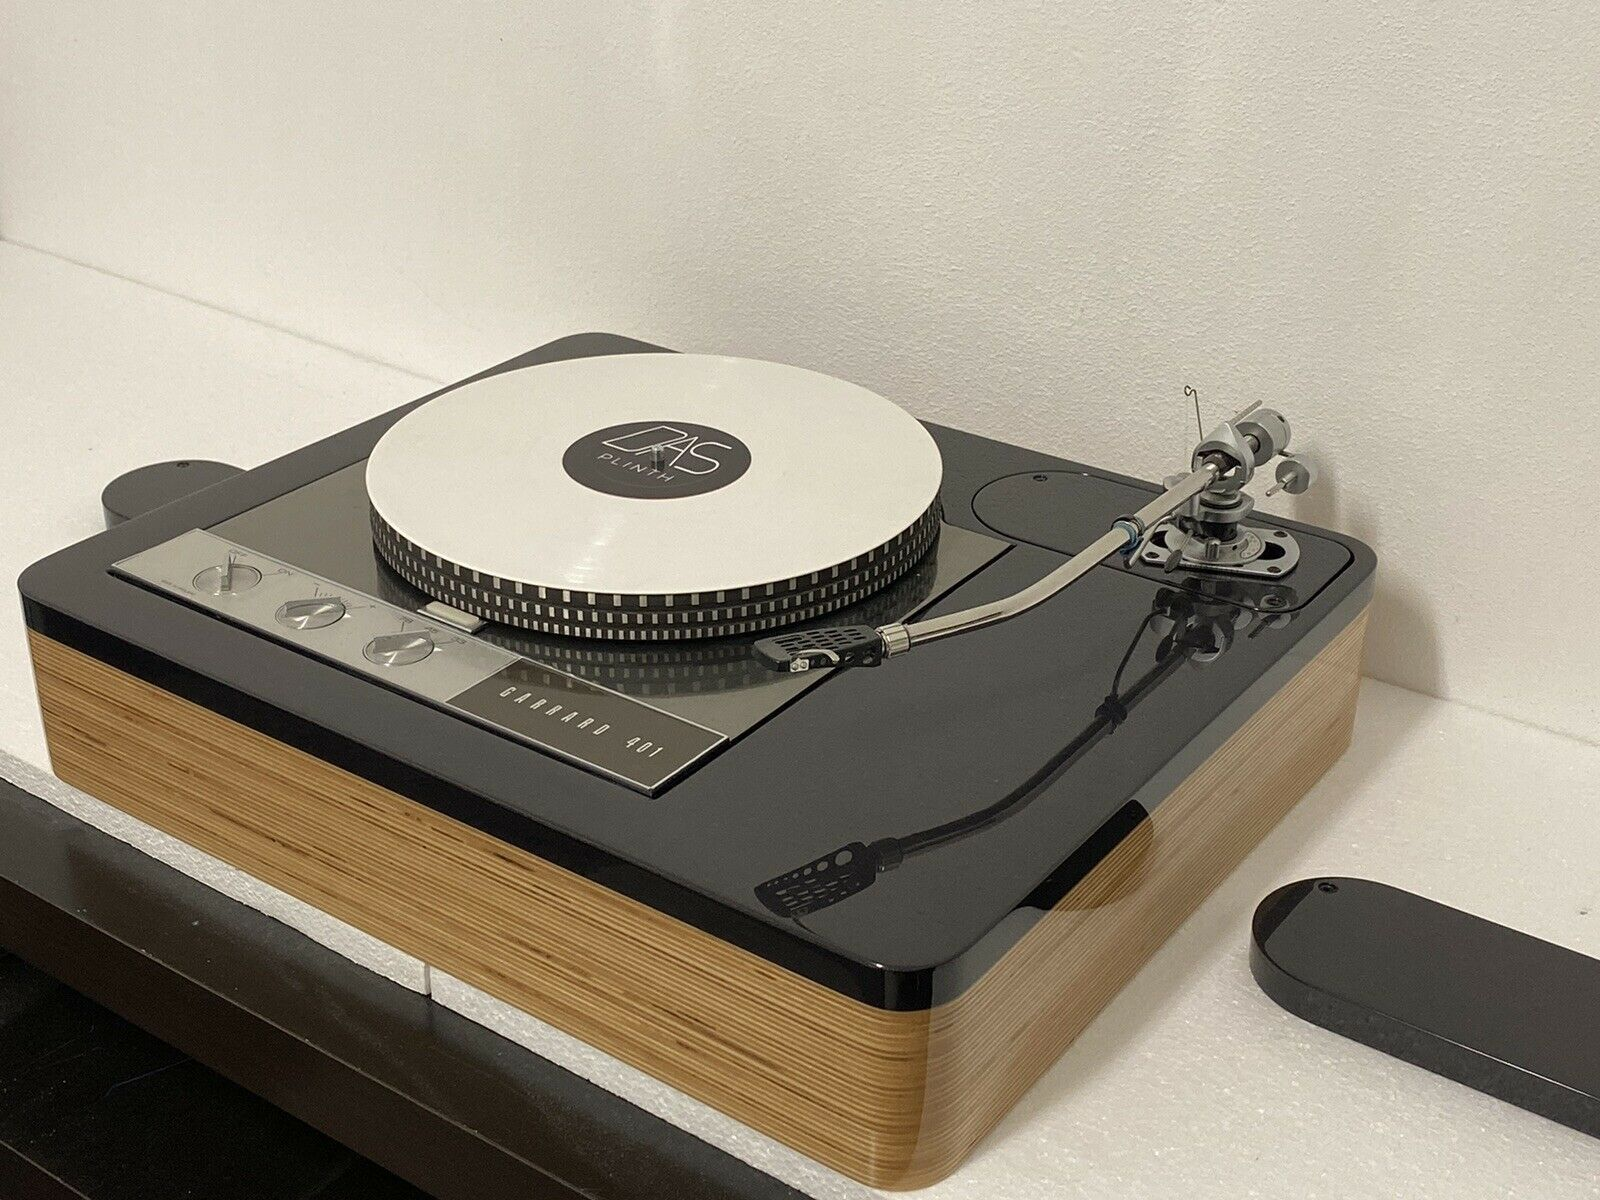 Lacquert Hq Birch Plywood Black Mdf Garrard 401 Long Version 9 12 Plinth Ebay In 2020 Turntable Record Player Record Players Vinyl Player